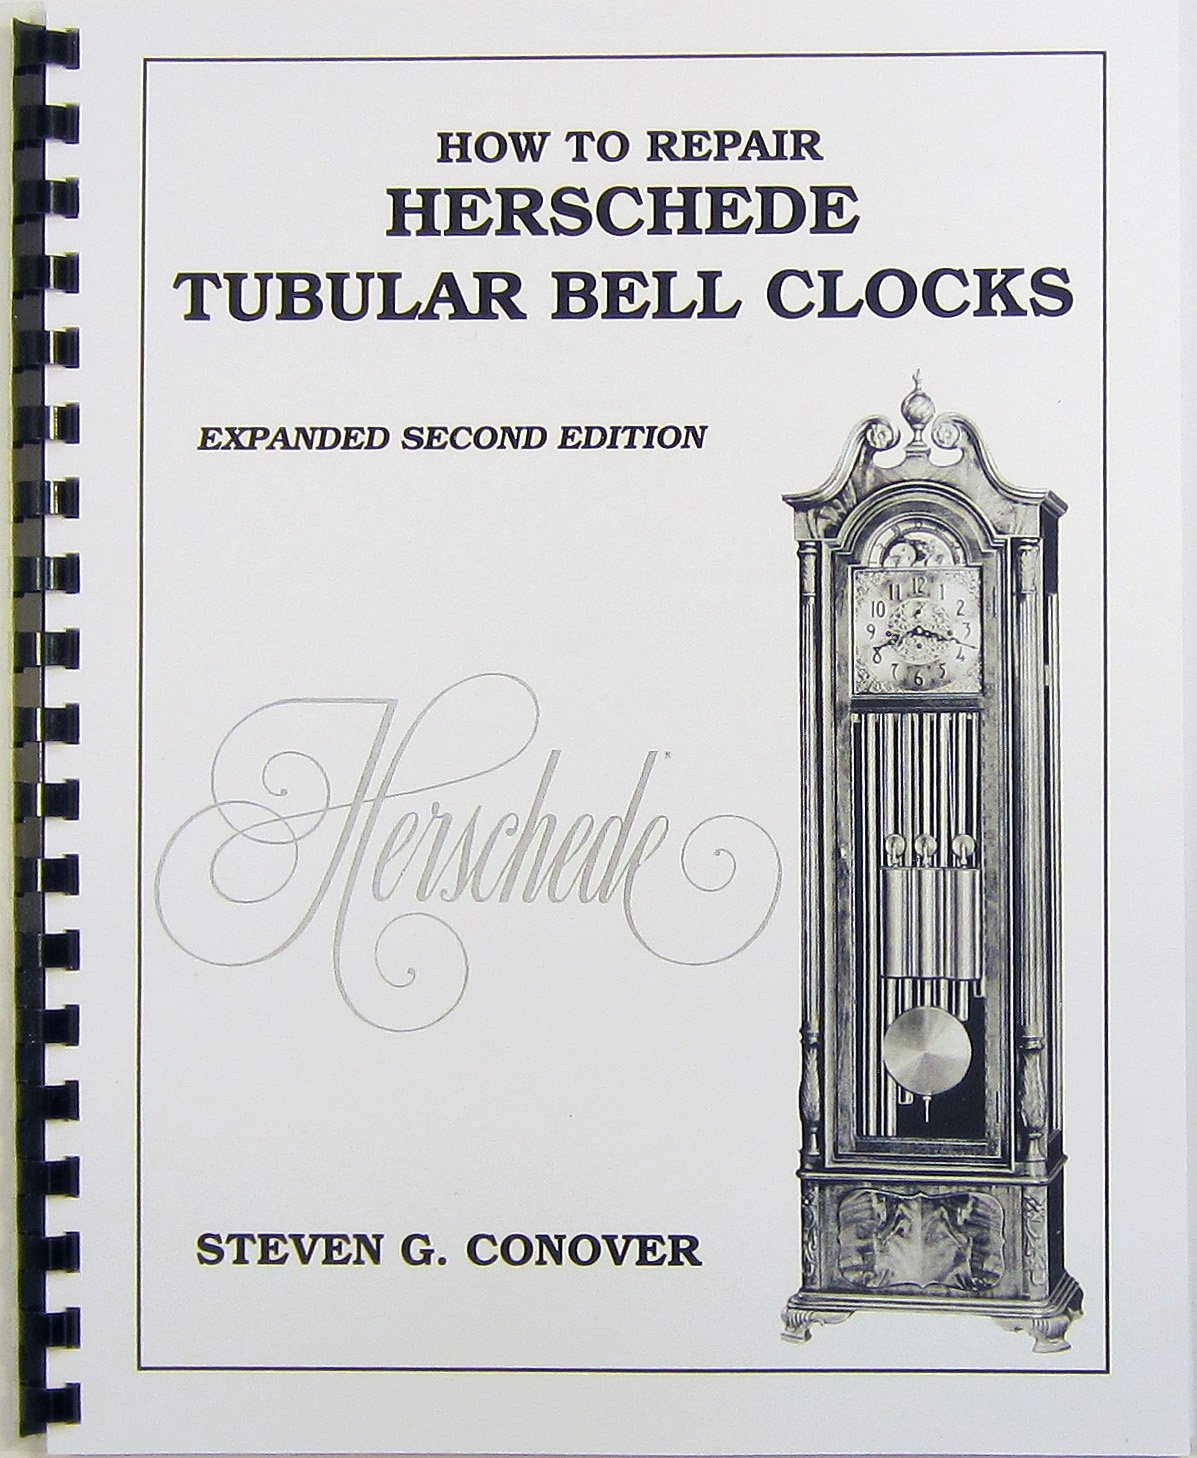 How to Repair Herschede Tubular Bell Clocks